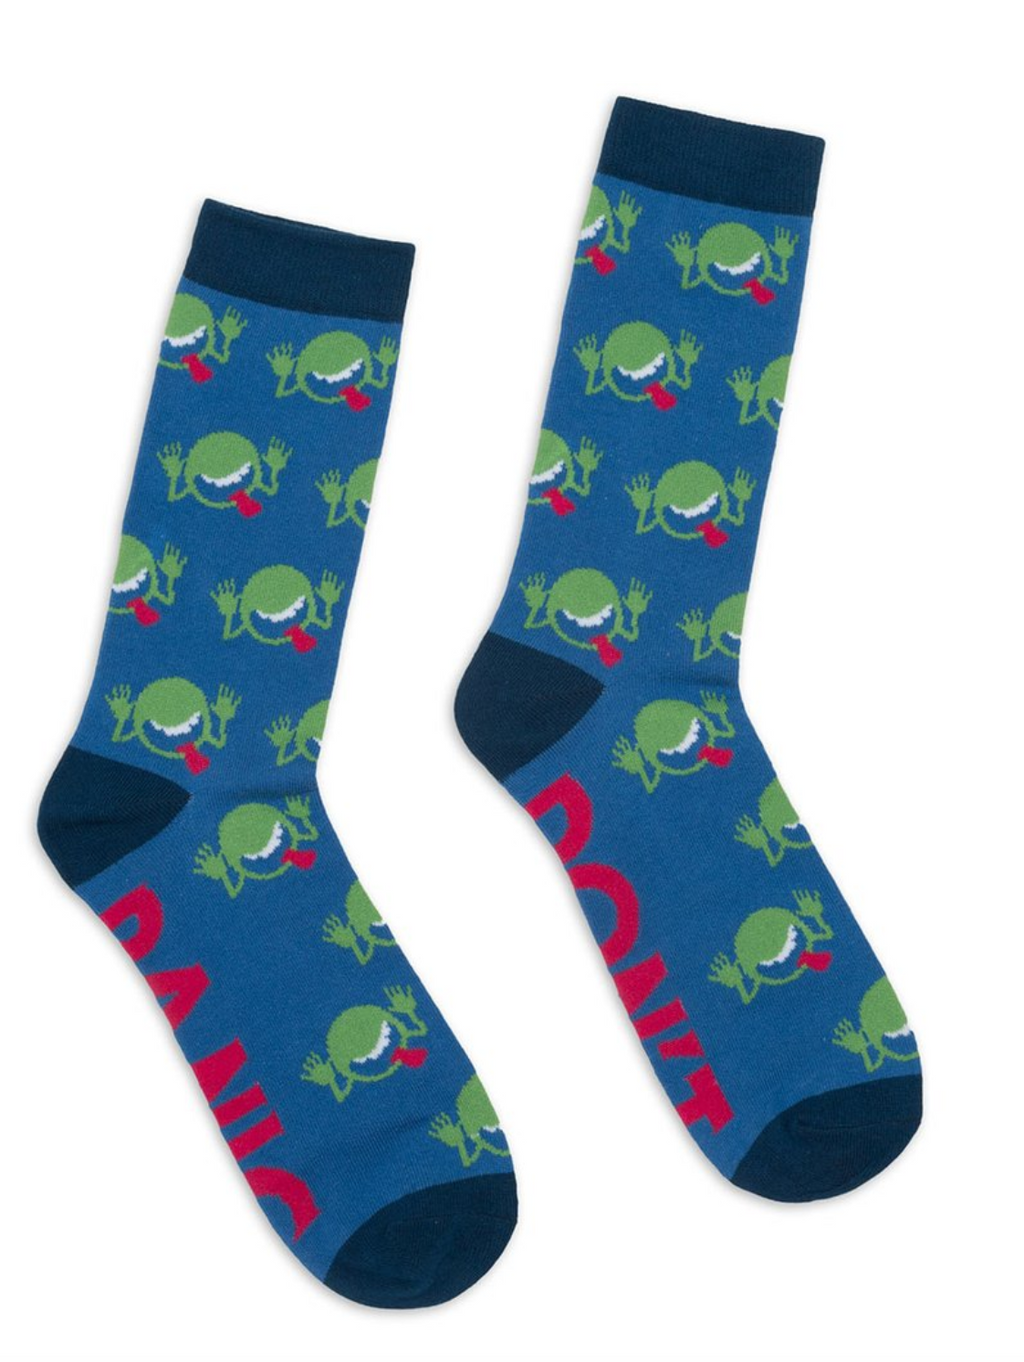 Hitchhiker's Guide to the Galaxy Adult Socks